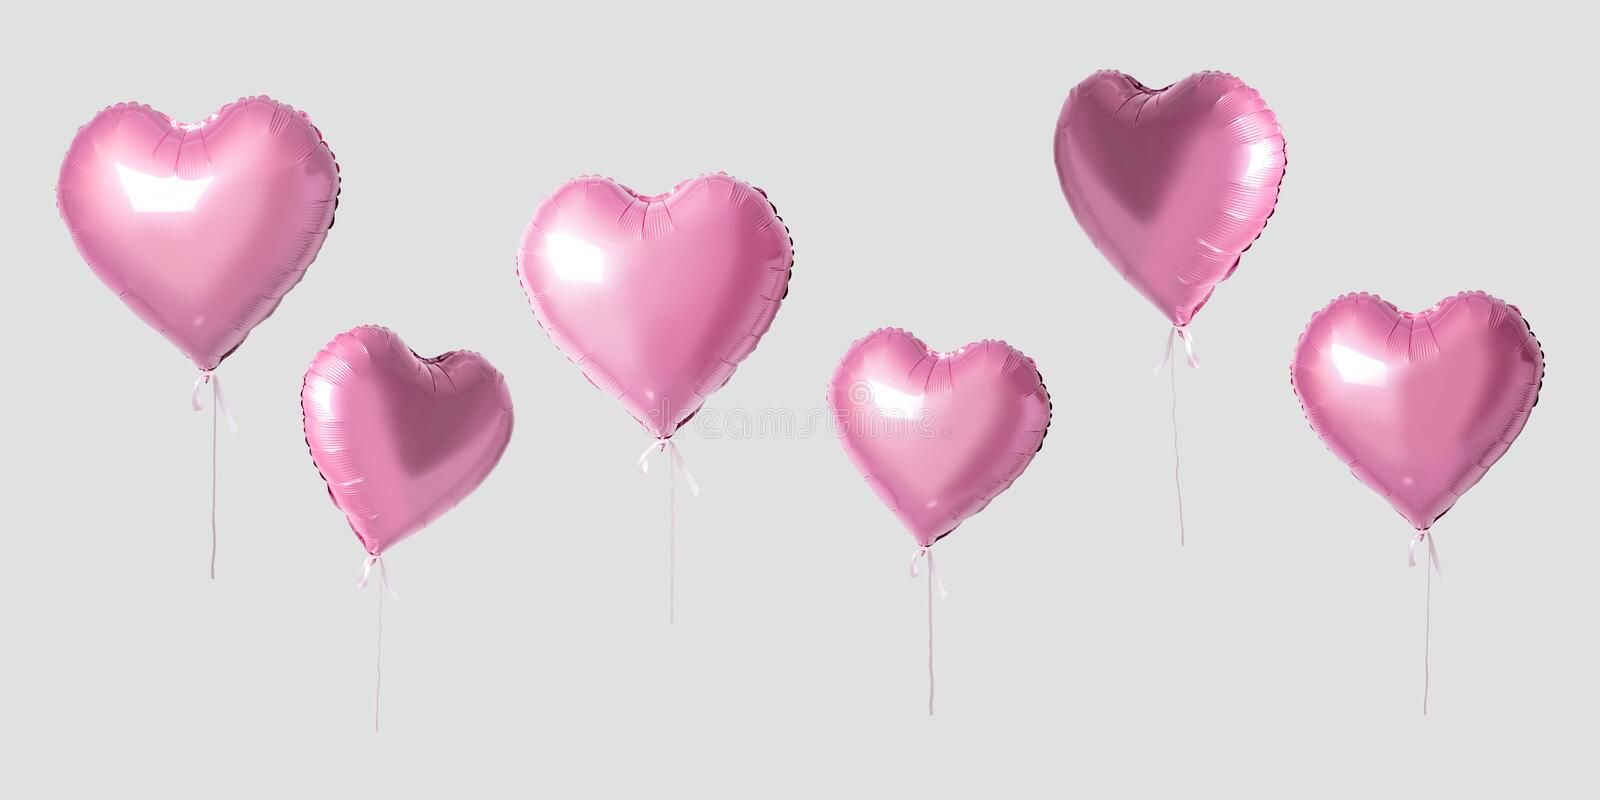 Many pink heart balloons on bright background. Minimal love concept royalty free stock image